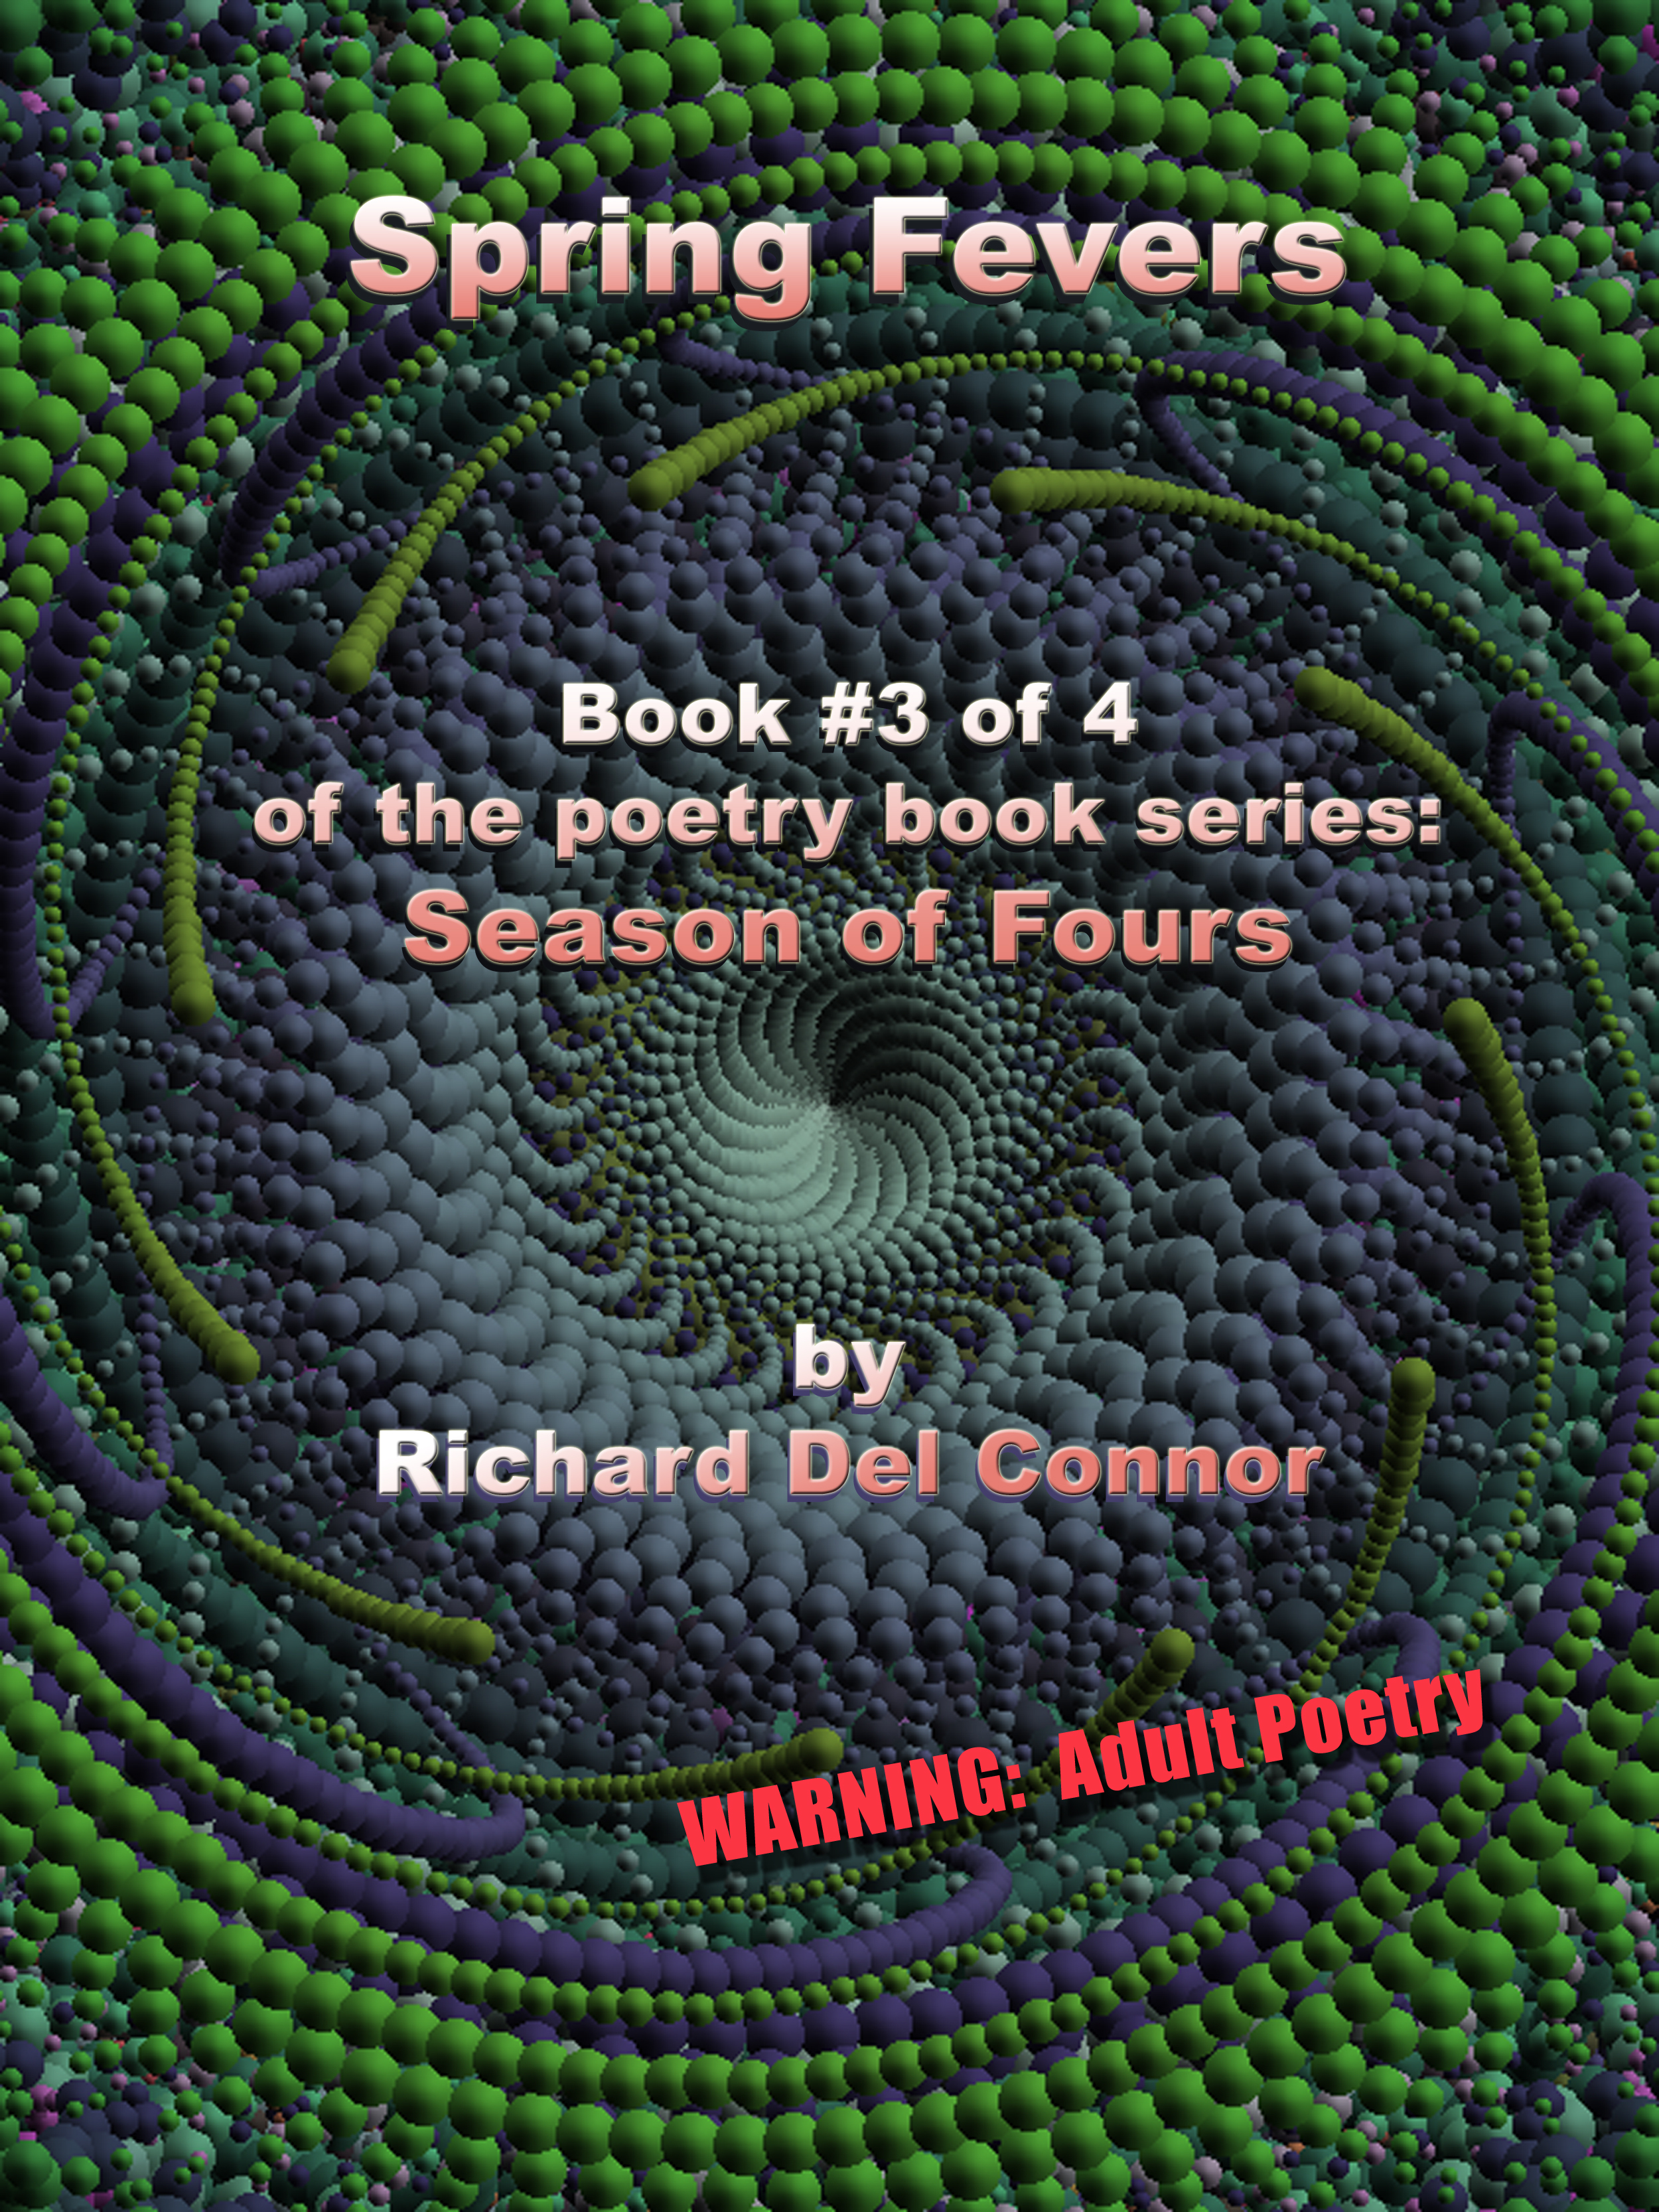 Spring Fevers: Book #3 of 4 of the poetry book series: Season of Fours